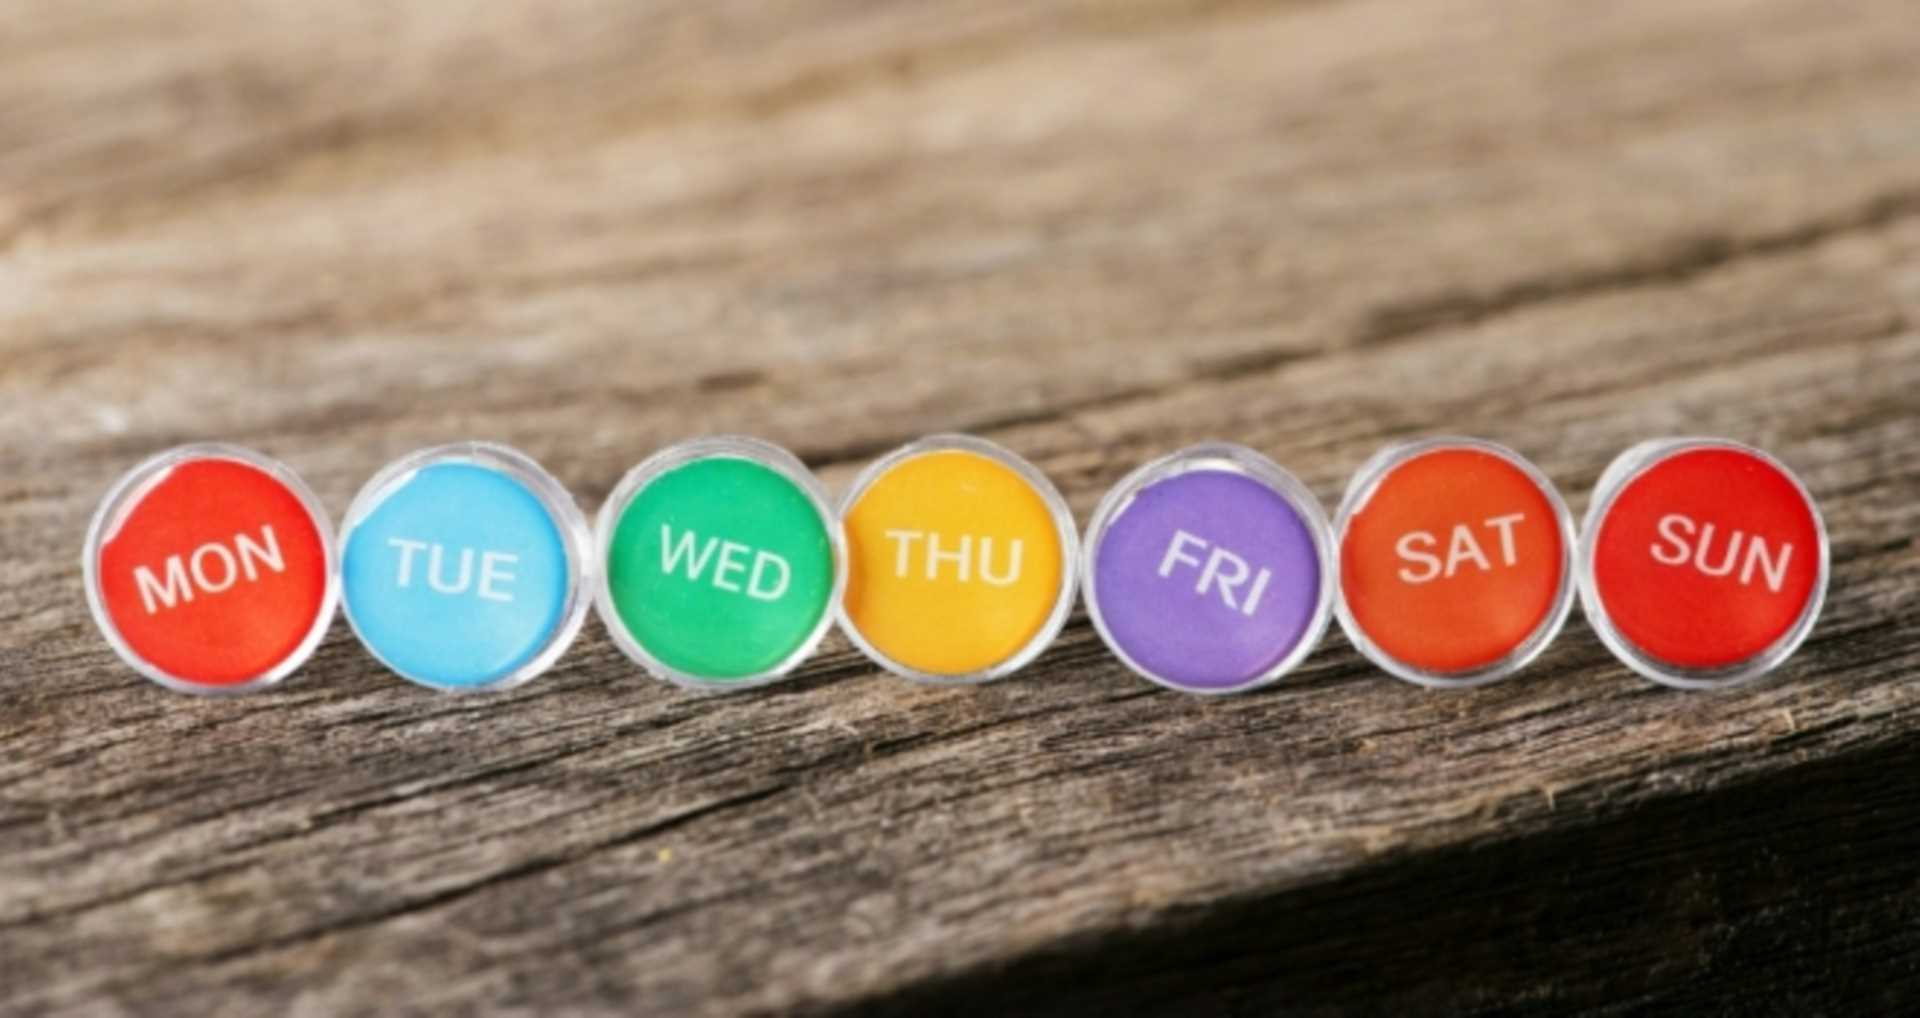 Which day of the week are you most likely to sell your home?